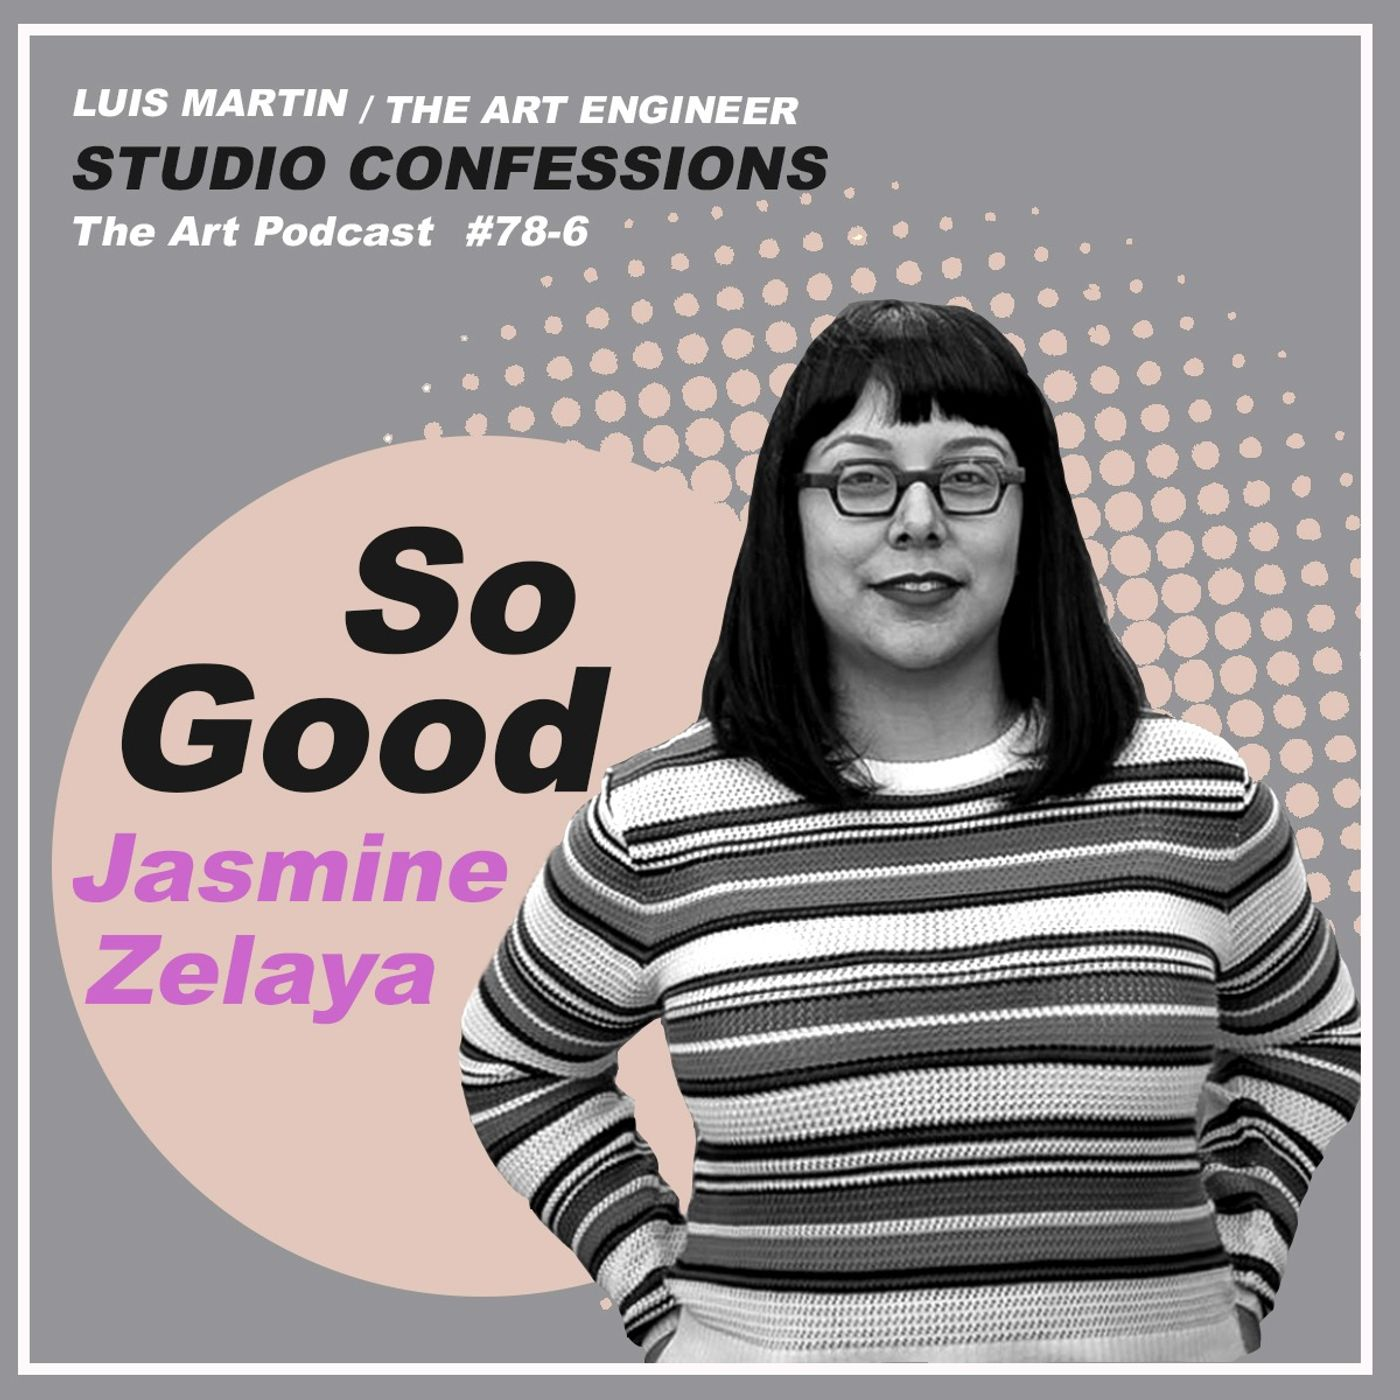 Jasmine Zelaya: So Good